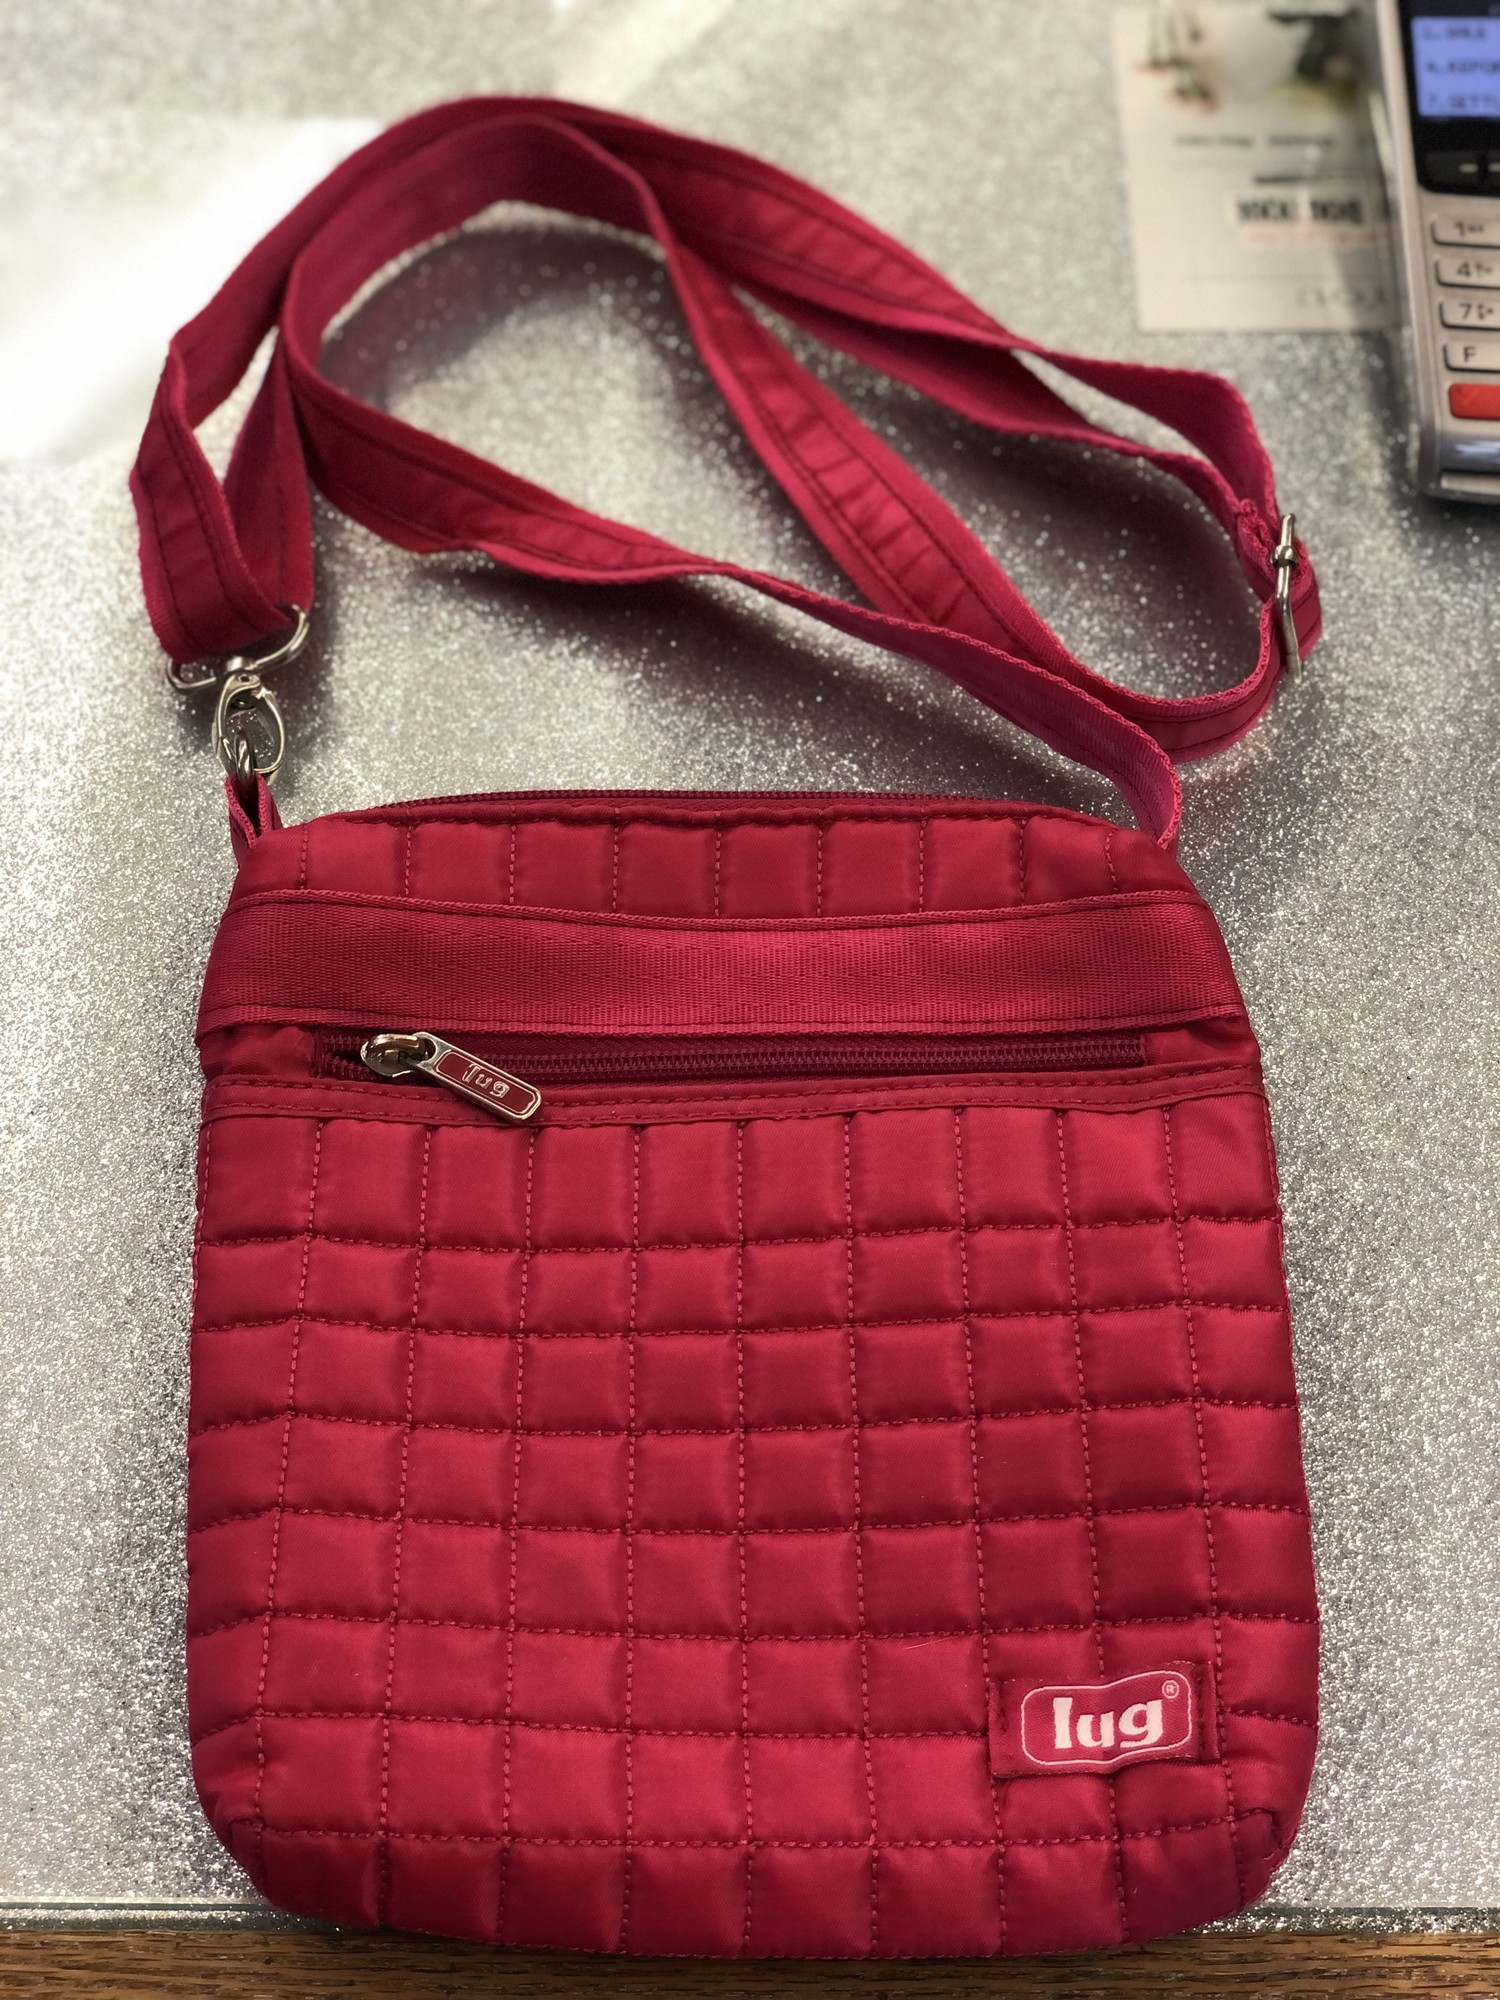 Small Quilted Crossbody, Pink, in Great preloved condition